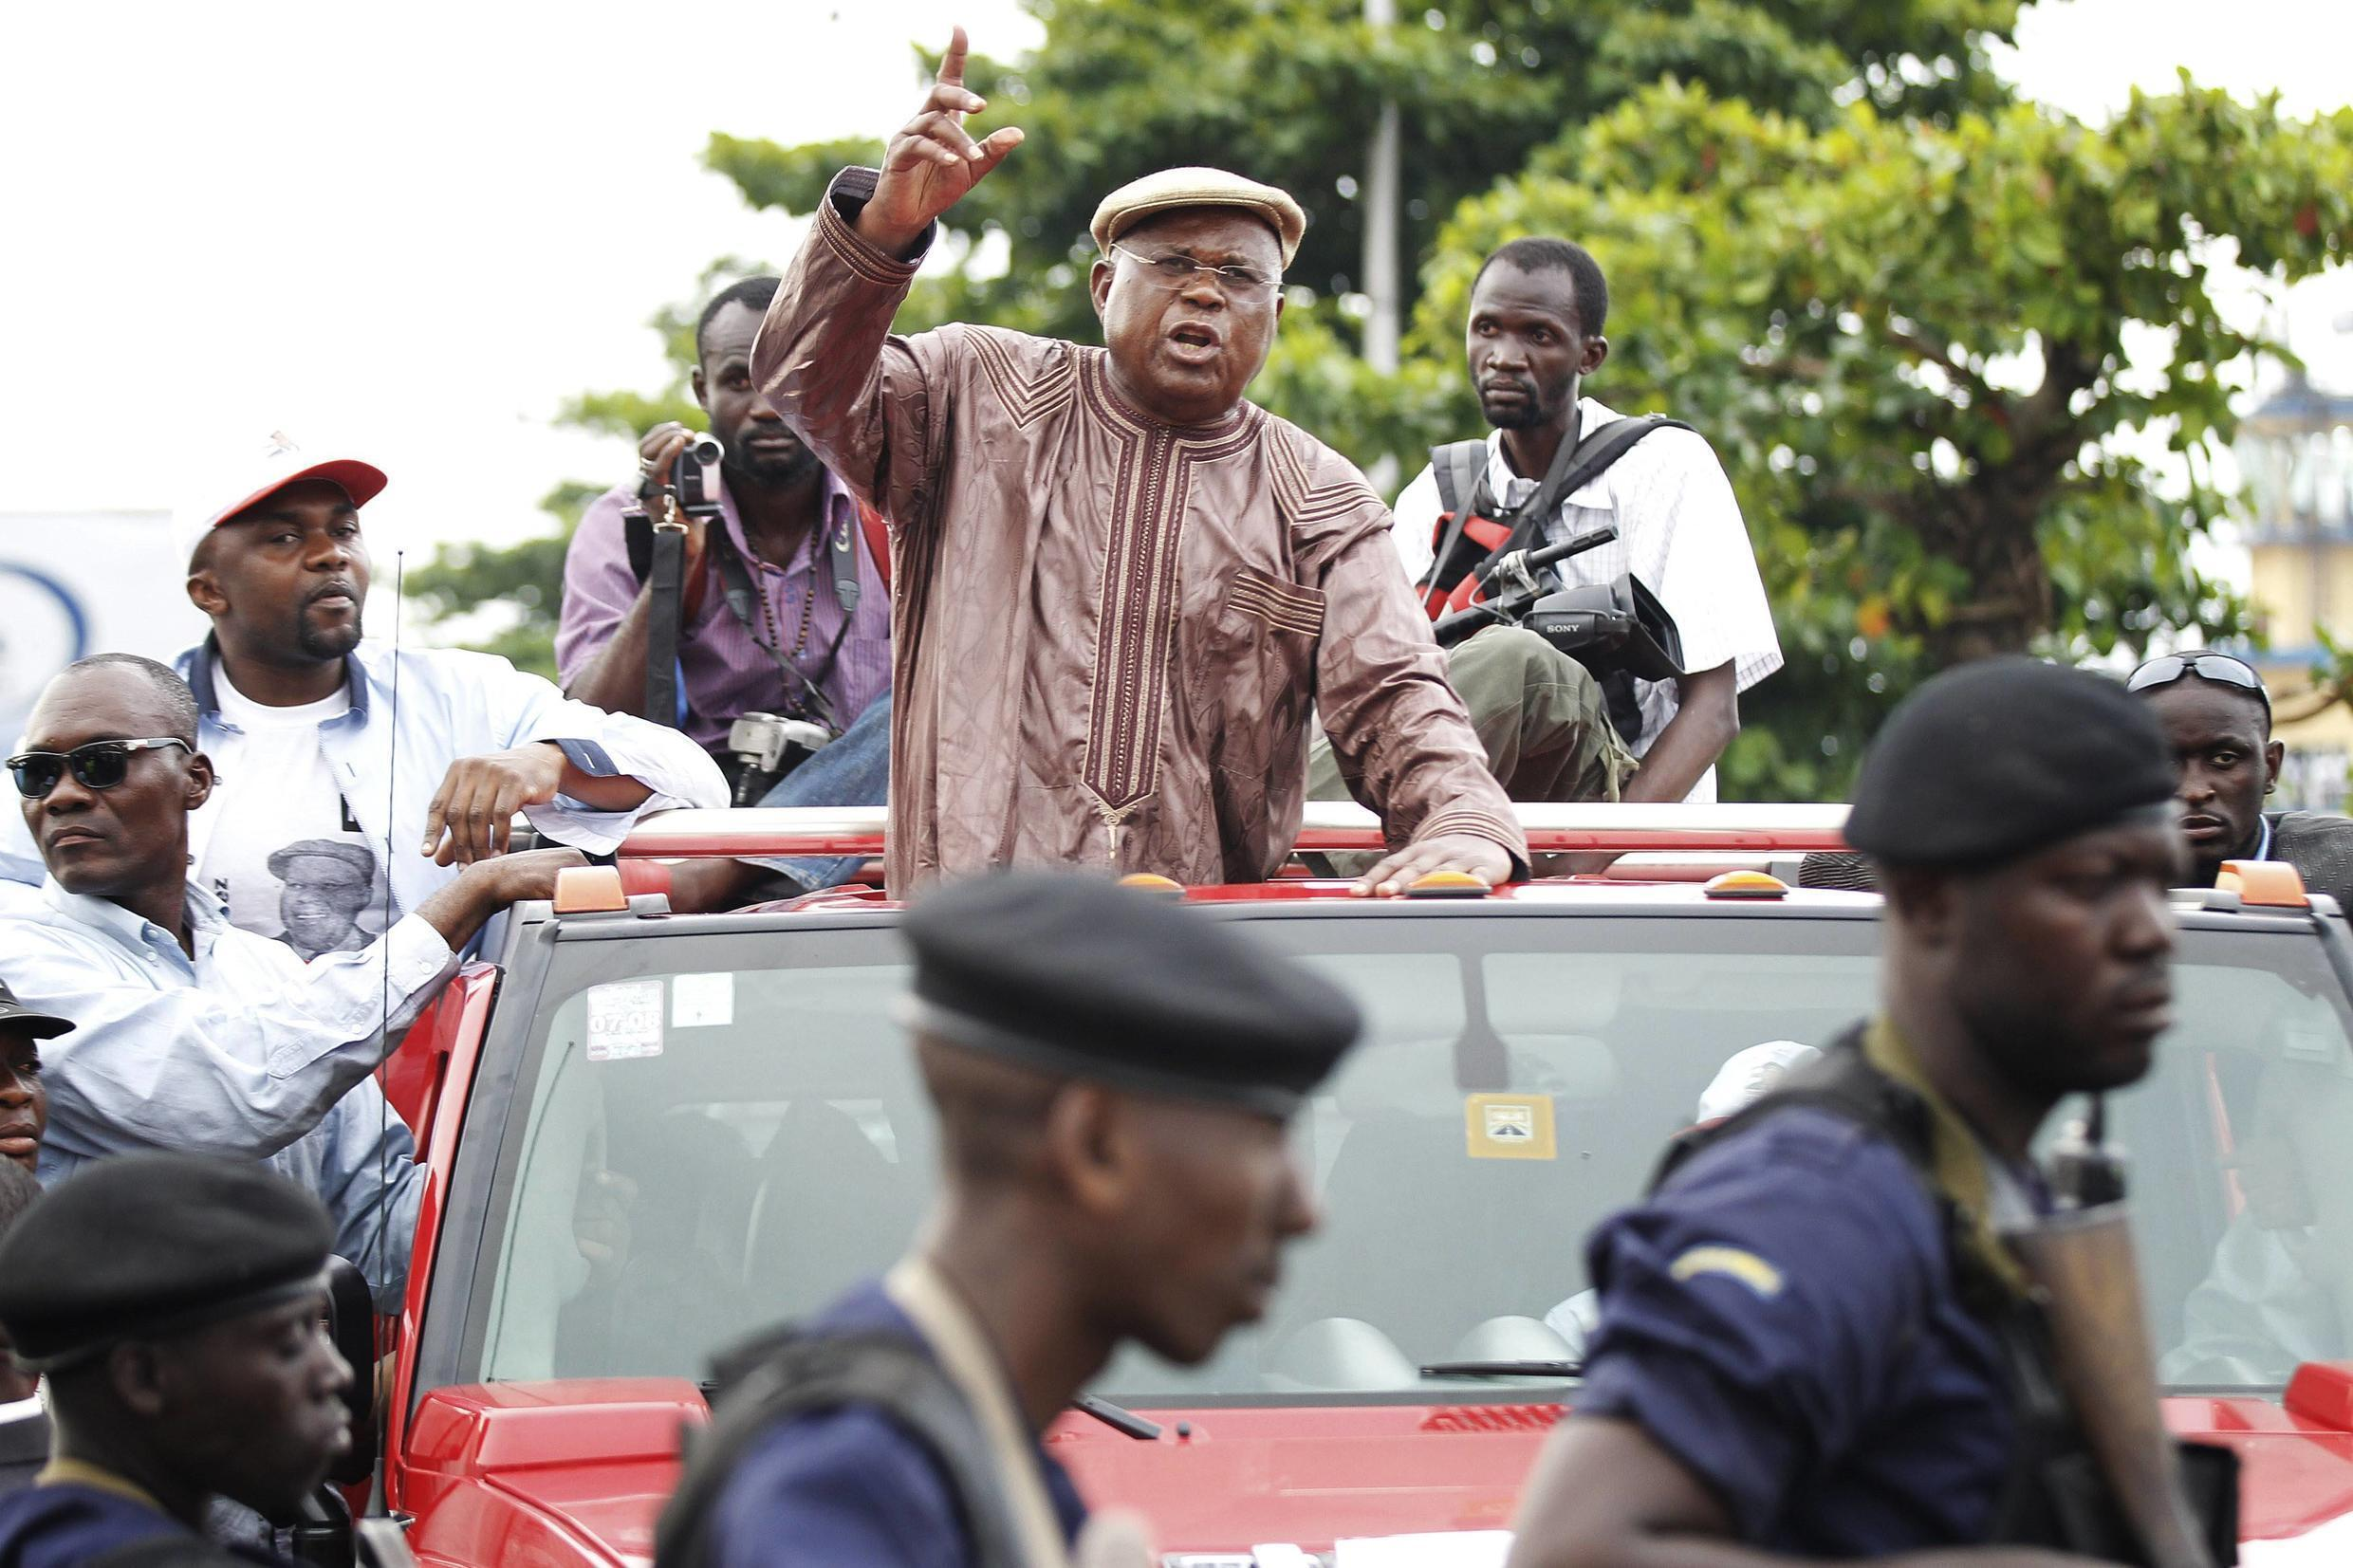 Opposition leader Etienne Tshisekedi and his entourage are blocked by police outside N'Djili airport in Kinshasa